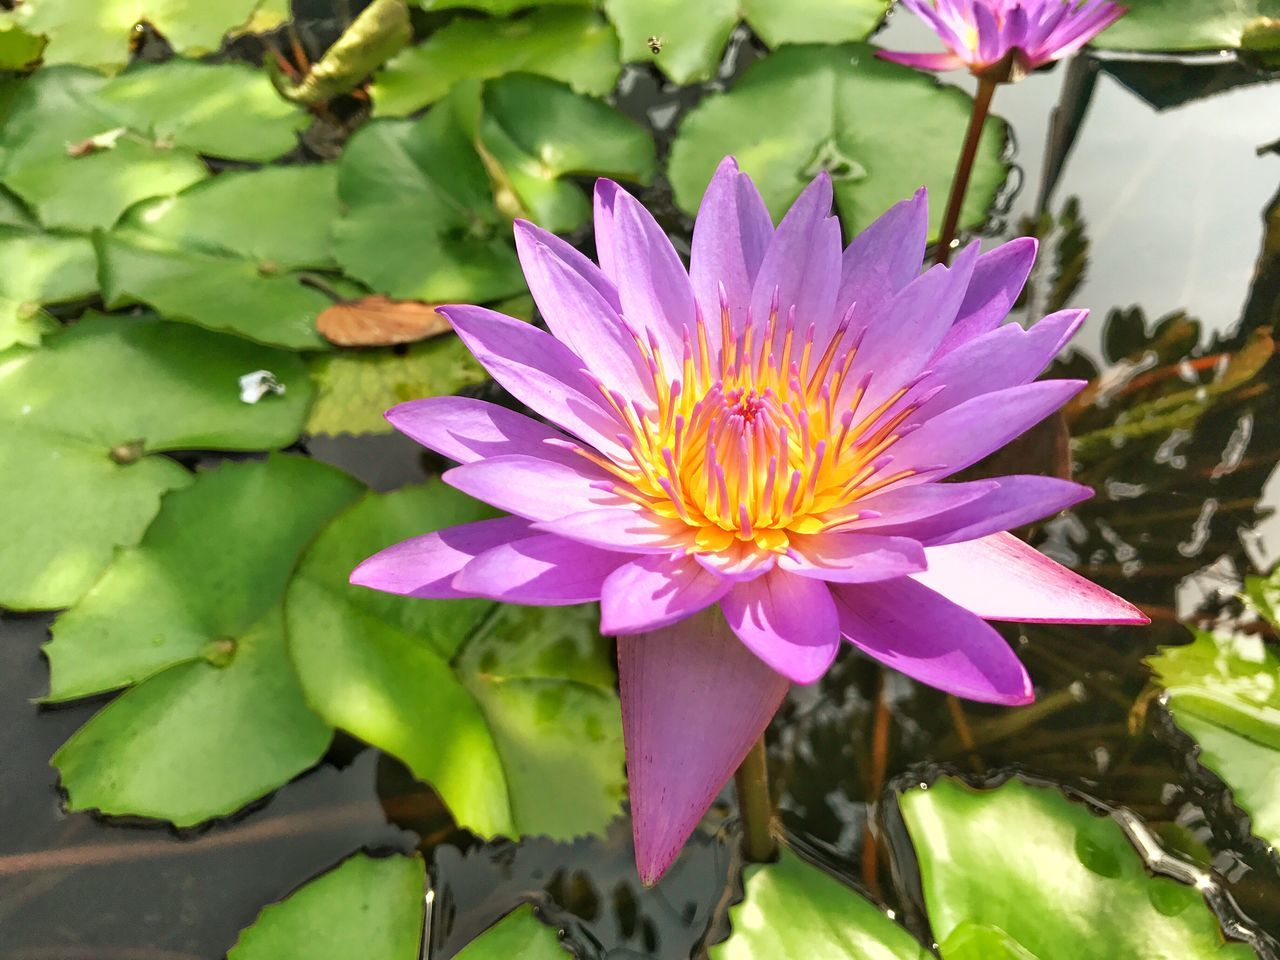 flower, beauty in nature, nature, petal, growth, fragility, freshness, leaf, flower head, plant, purple, no people, outdoors, pink color, day, blooming, water lily, close-up, lotus water lily, water